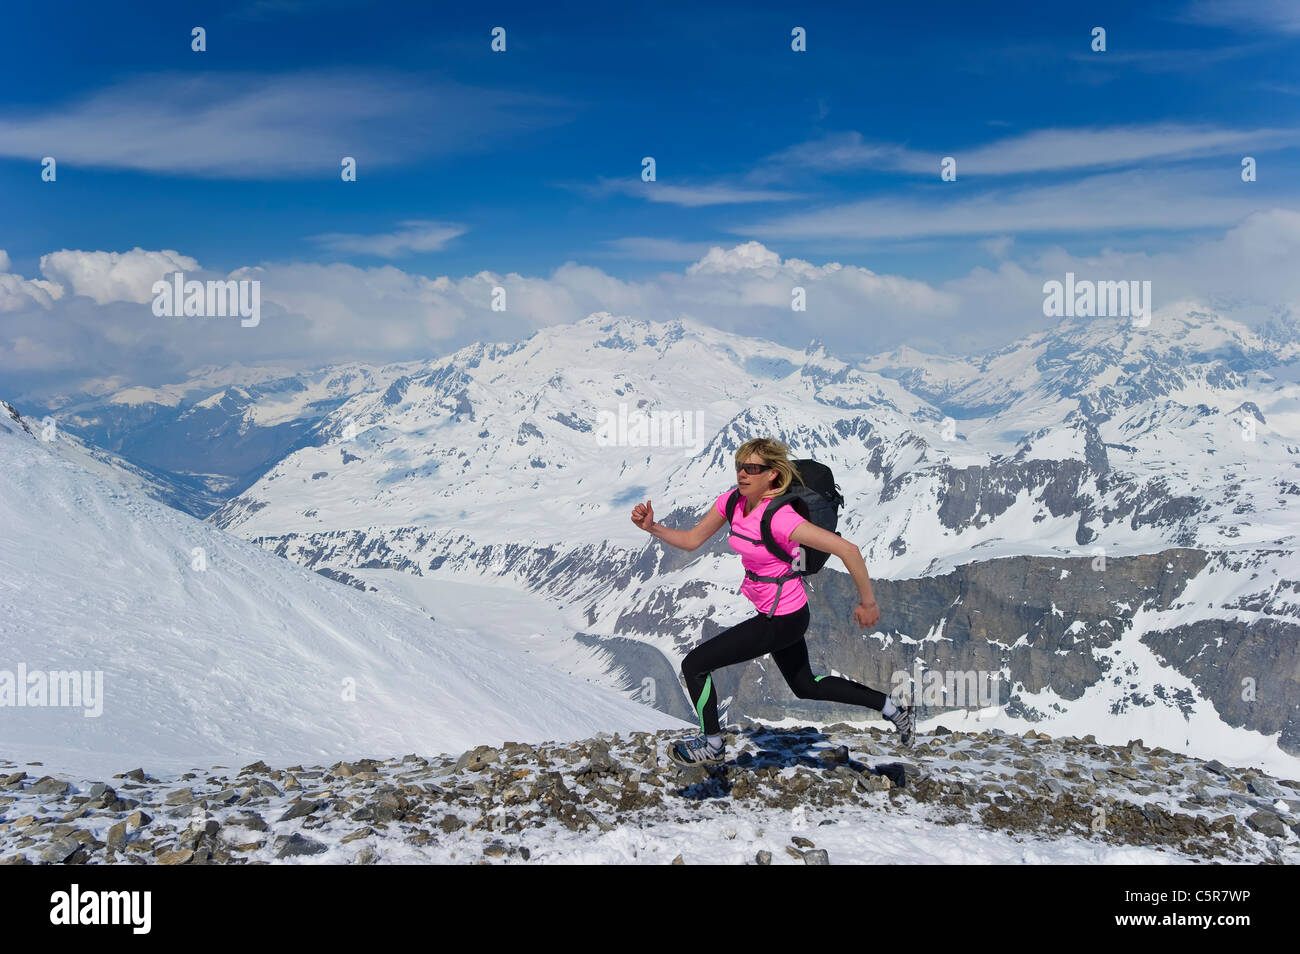 A woman running fast across snowy mountains. - Stock Image